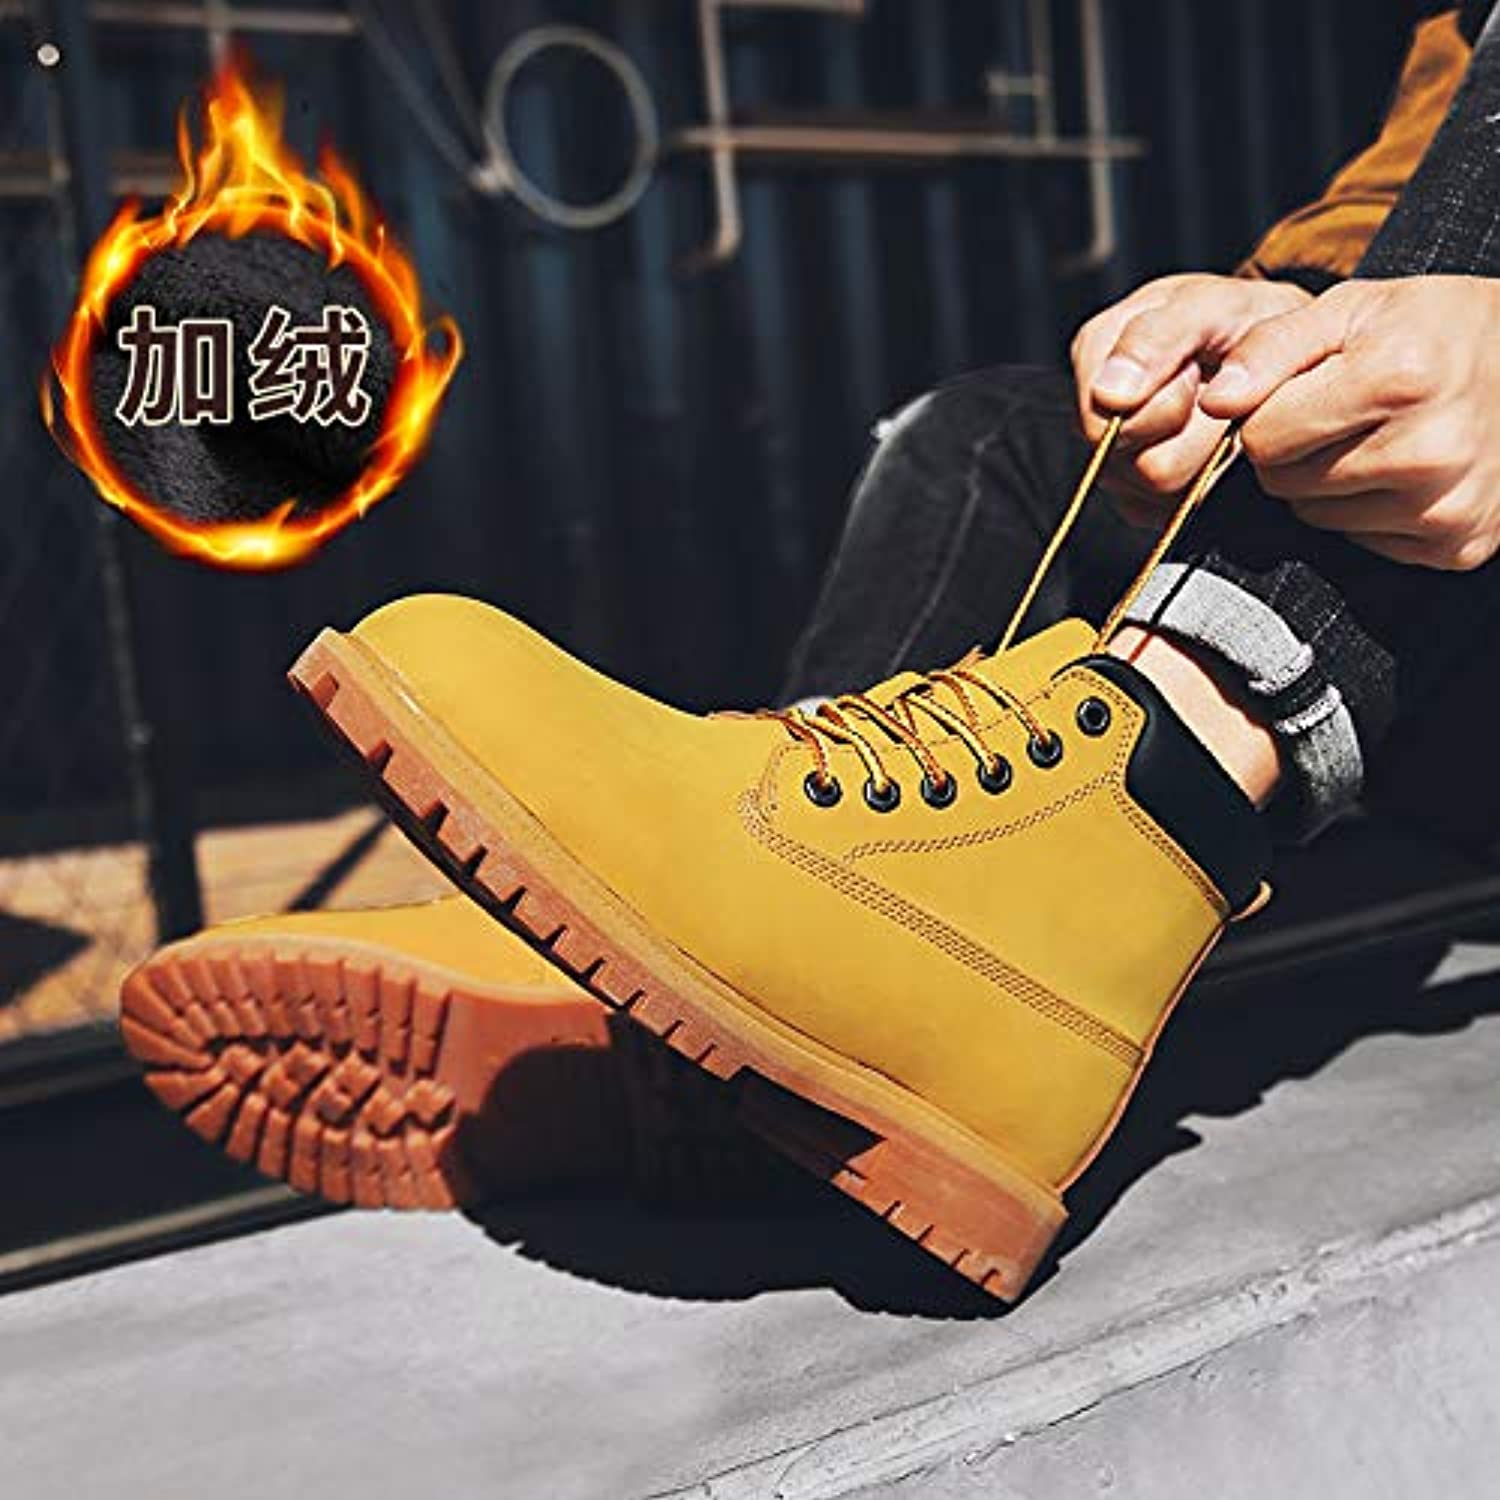 ZyuQ Ankle boots Martin Boots Men'S Fashion High-Top shoes Winter Thickening Snow Tooling Military Boots